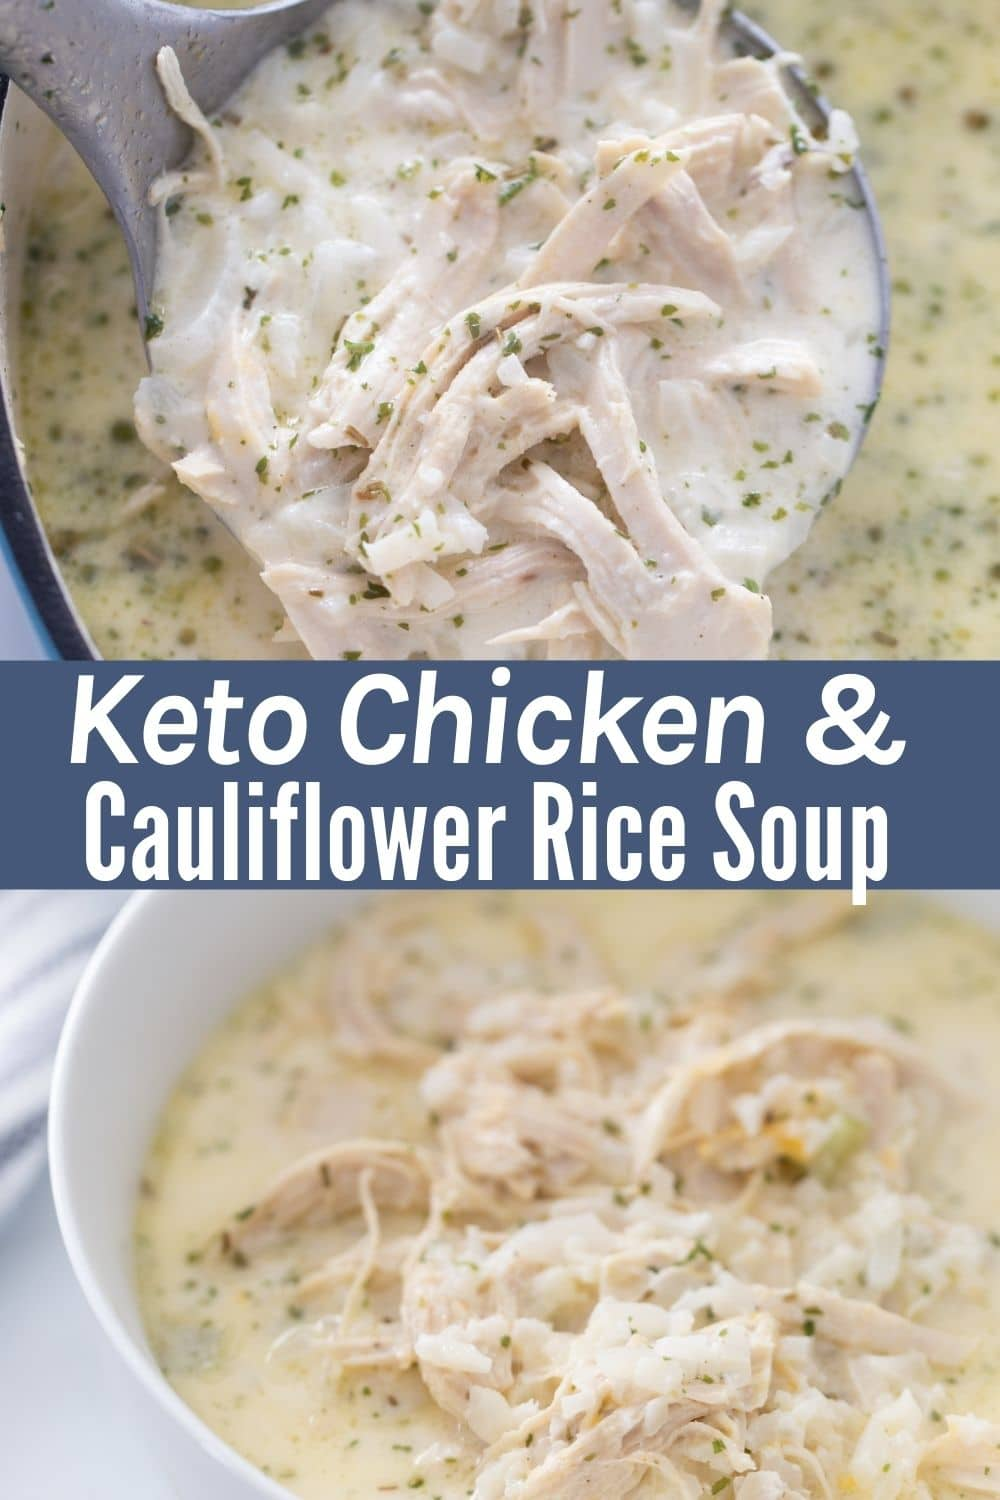 Collage image of keto cauliflower soup with rice